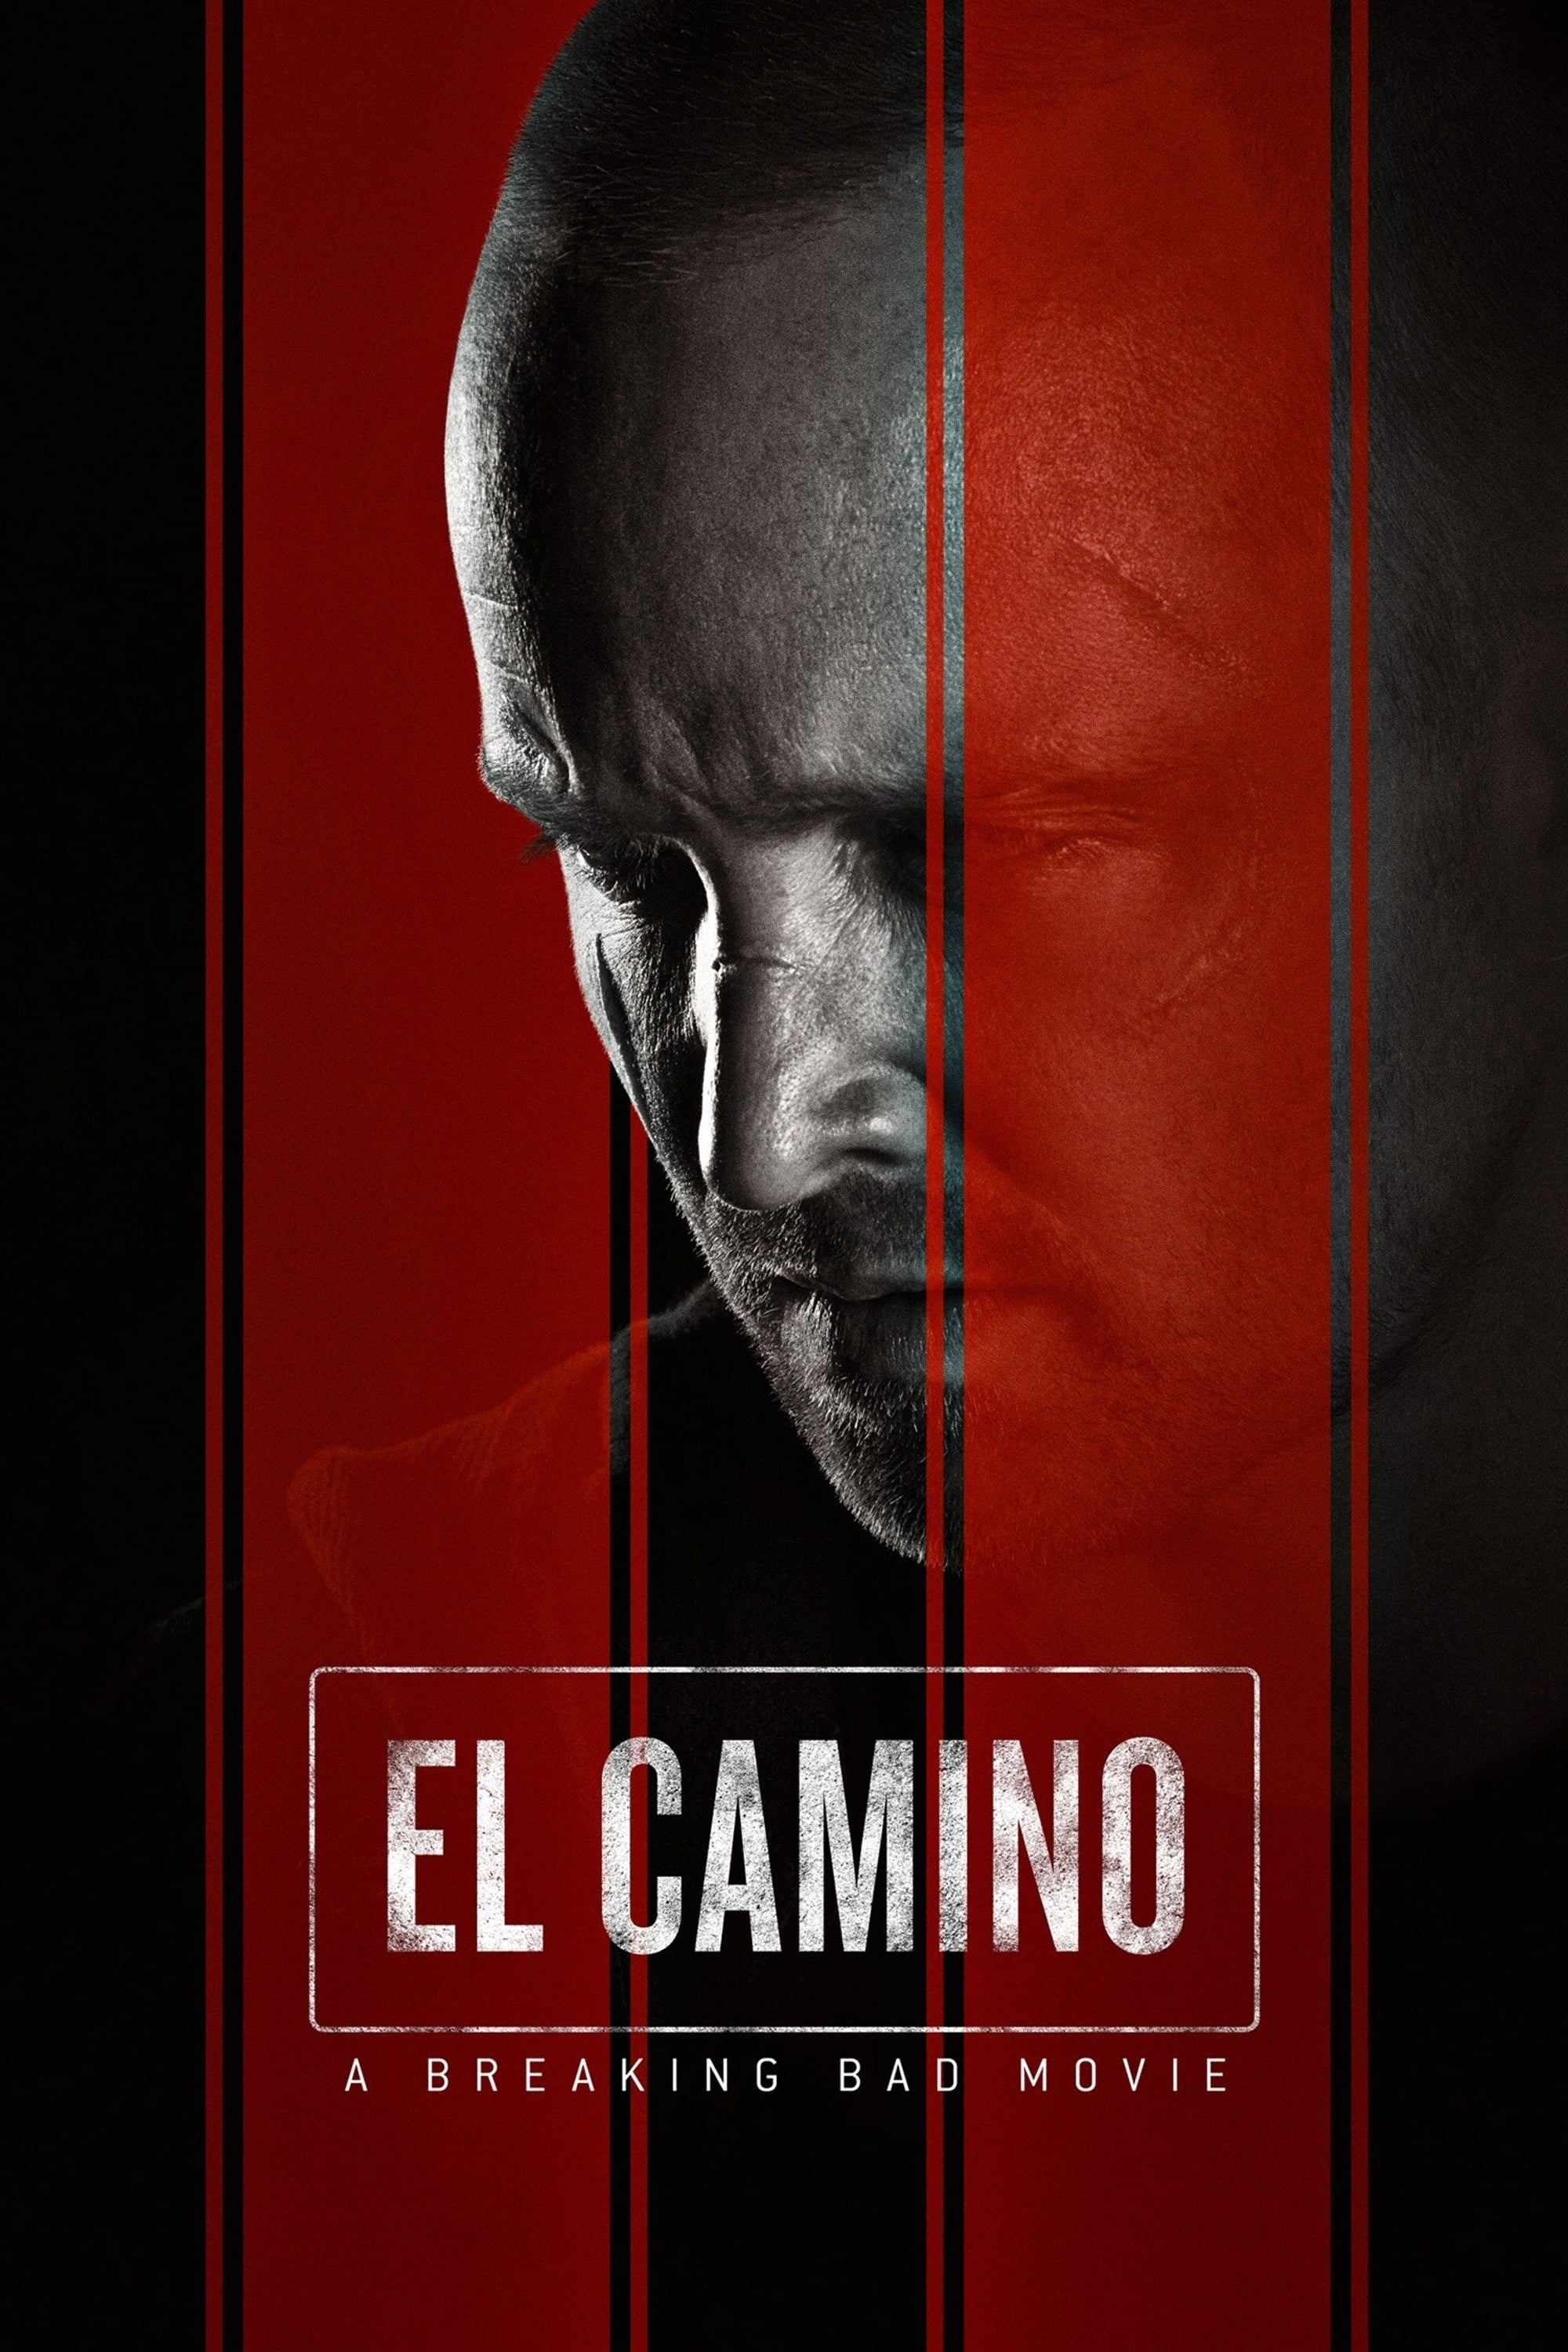 image for El Camino: A Breaking Bad Movie